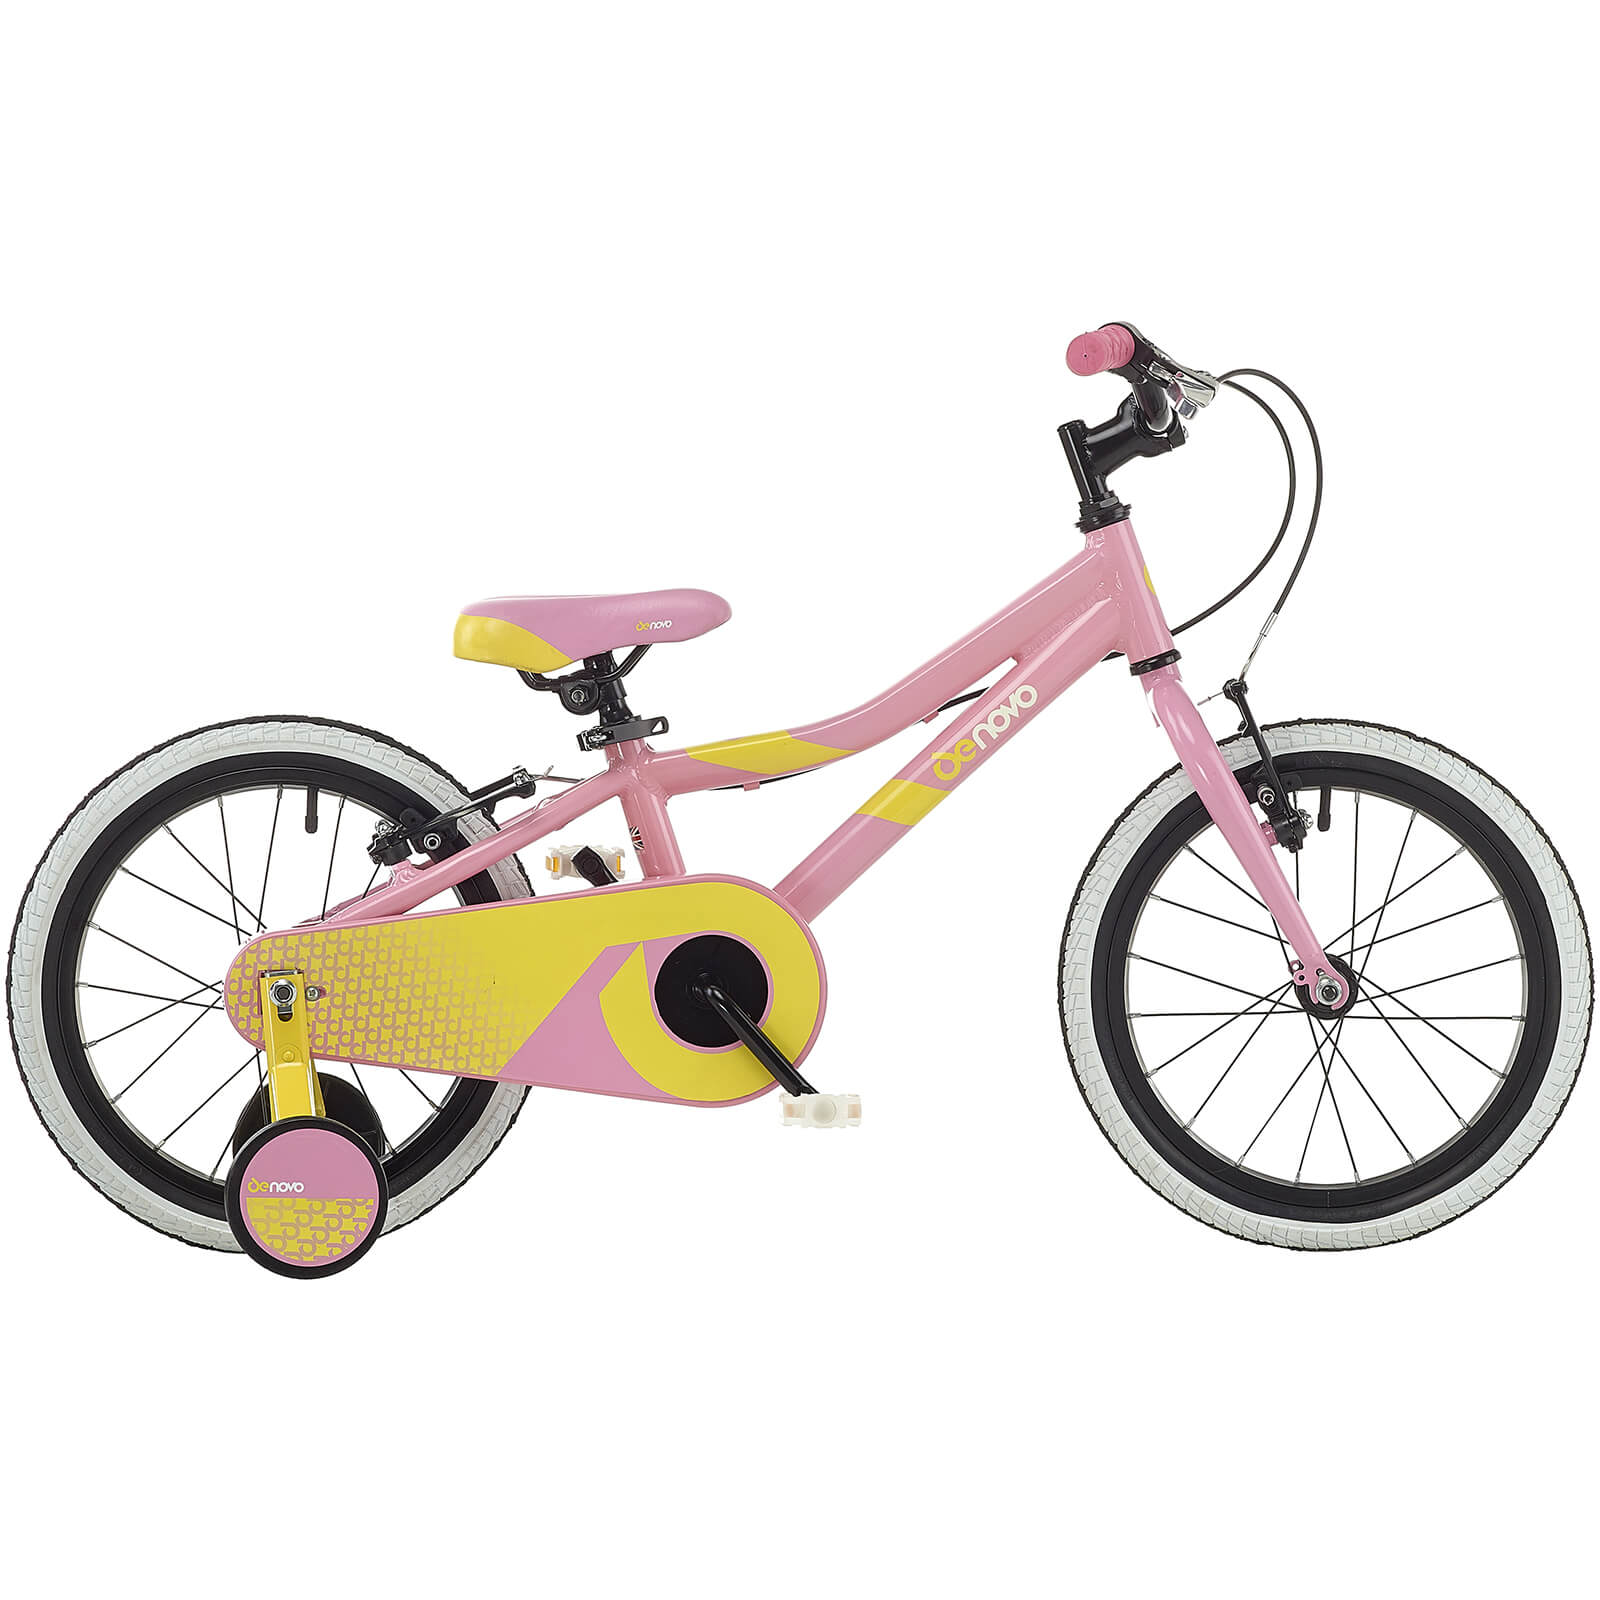 "16"" Denovo Plus Girls Lightweight Alloy Bike"